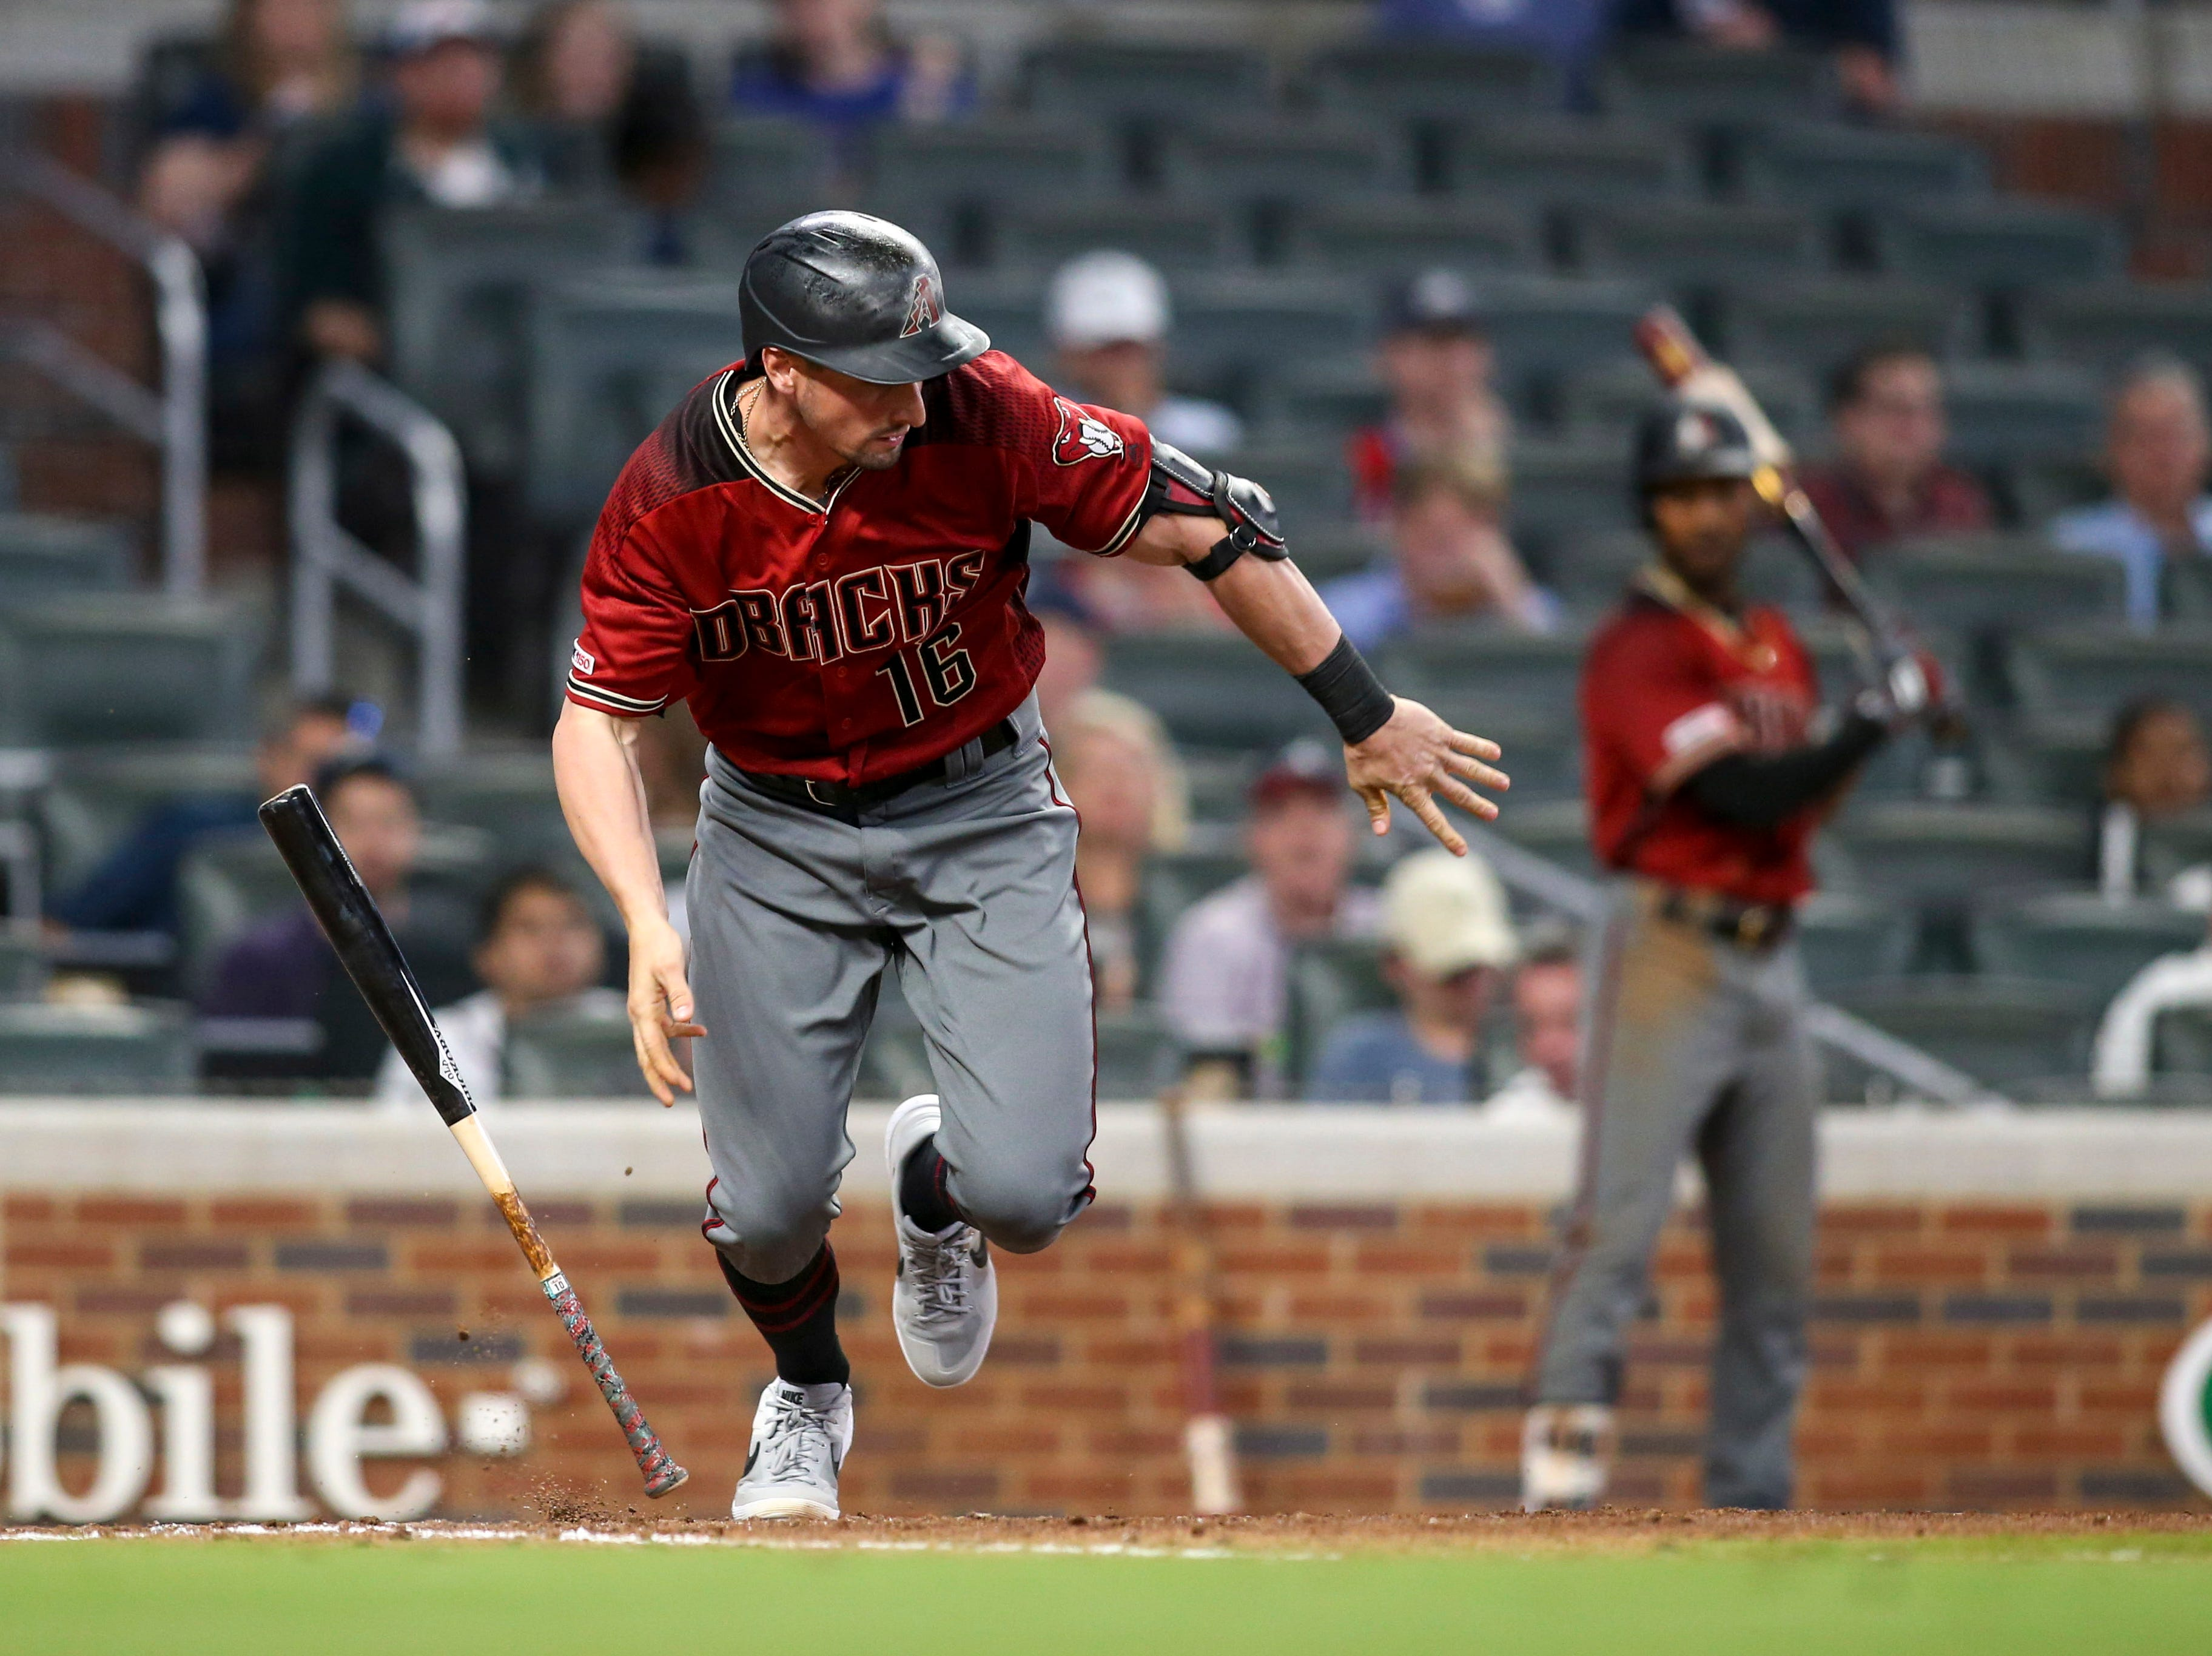 Apr 17, 2019; Atlanta, GA, USA; Arizona Diamondbacks center fielder Tim Locastro (16) reaches on an error against the Atlanta Braves in the tenth inning at SunTrust Park. Mandatory Credit: Brett Davis-USA TODAY Sports